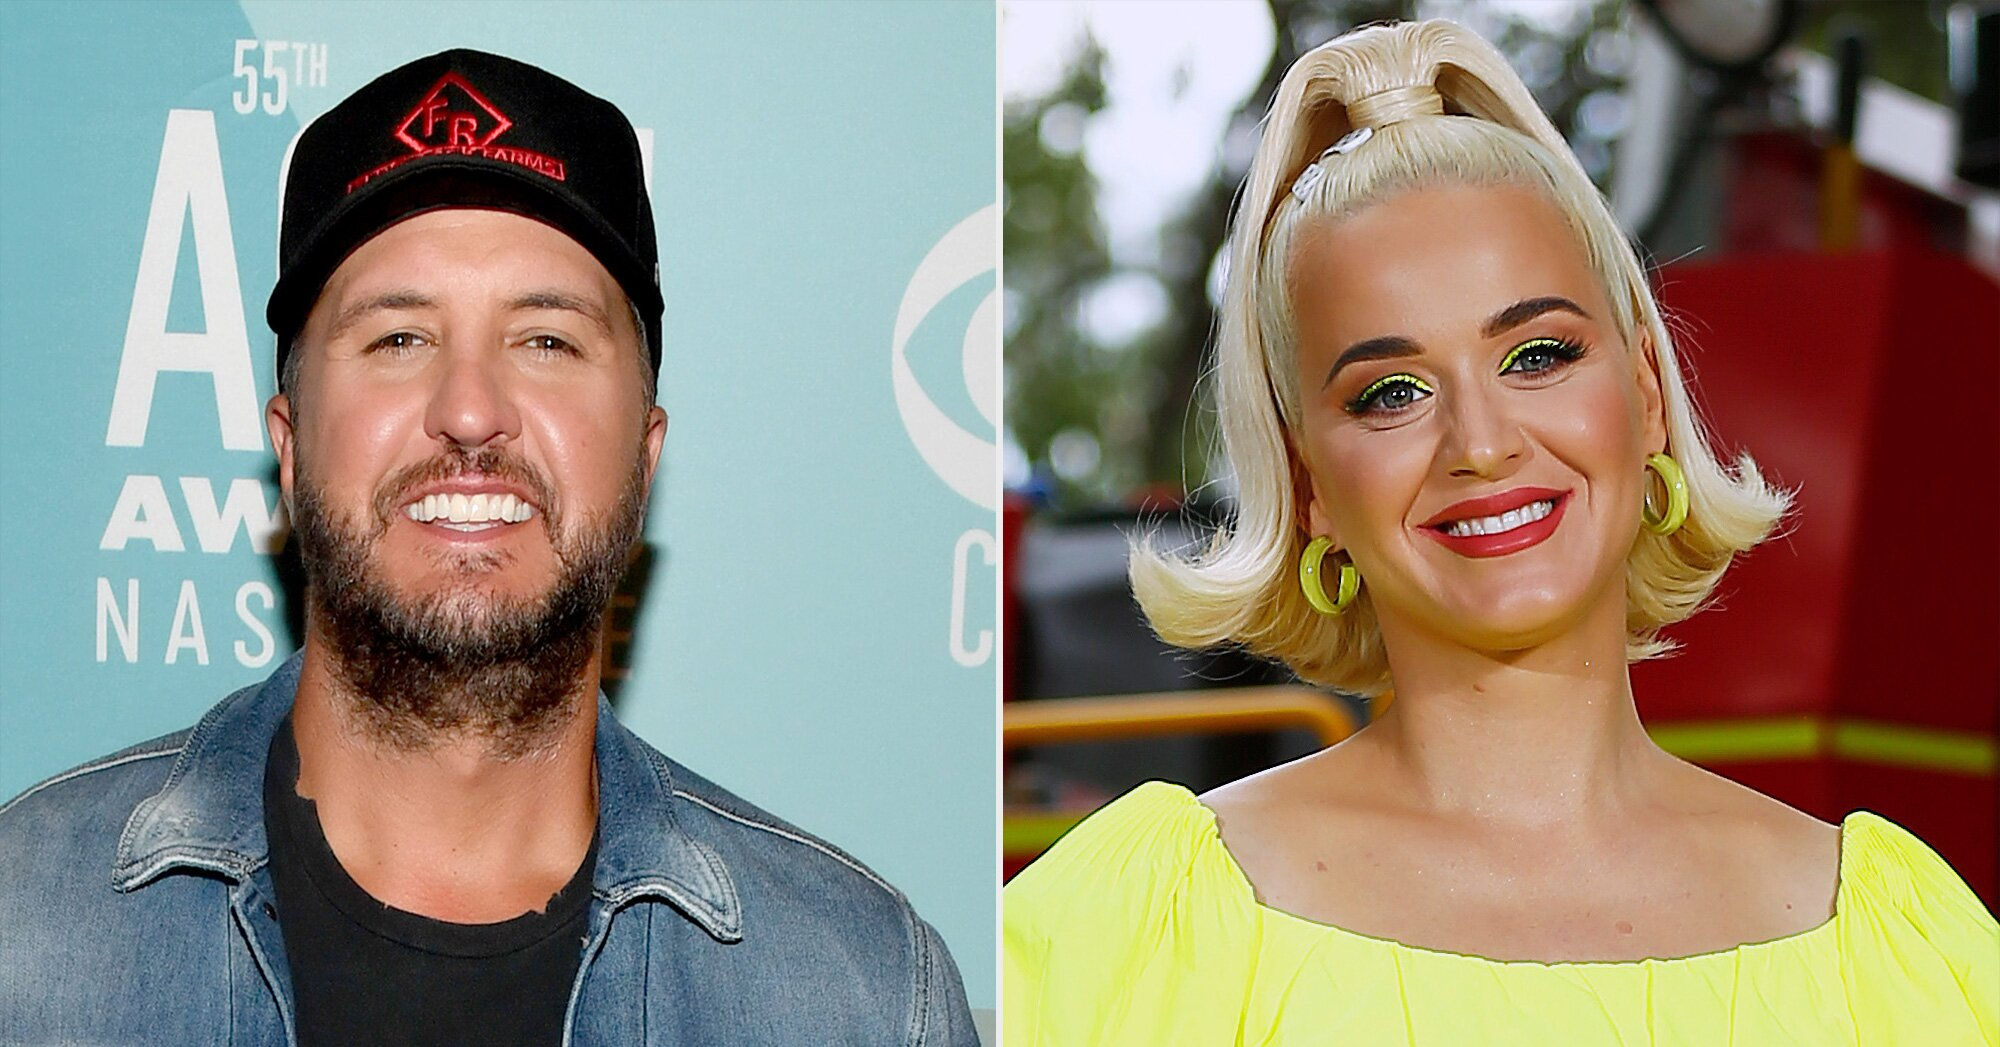 Luke Bryan Says He 'Can't Wait' to Meet Katy Perry's 'Precious, Beautiful' Daughter Daisy Dove